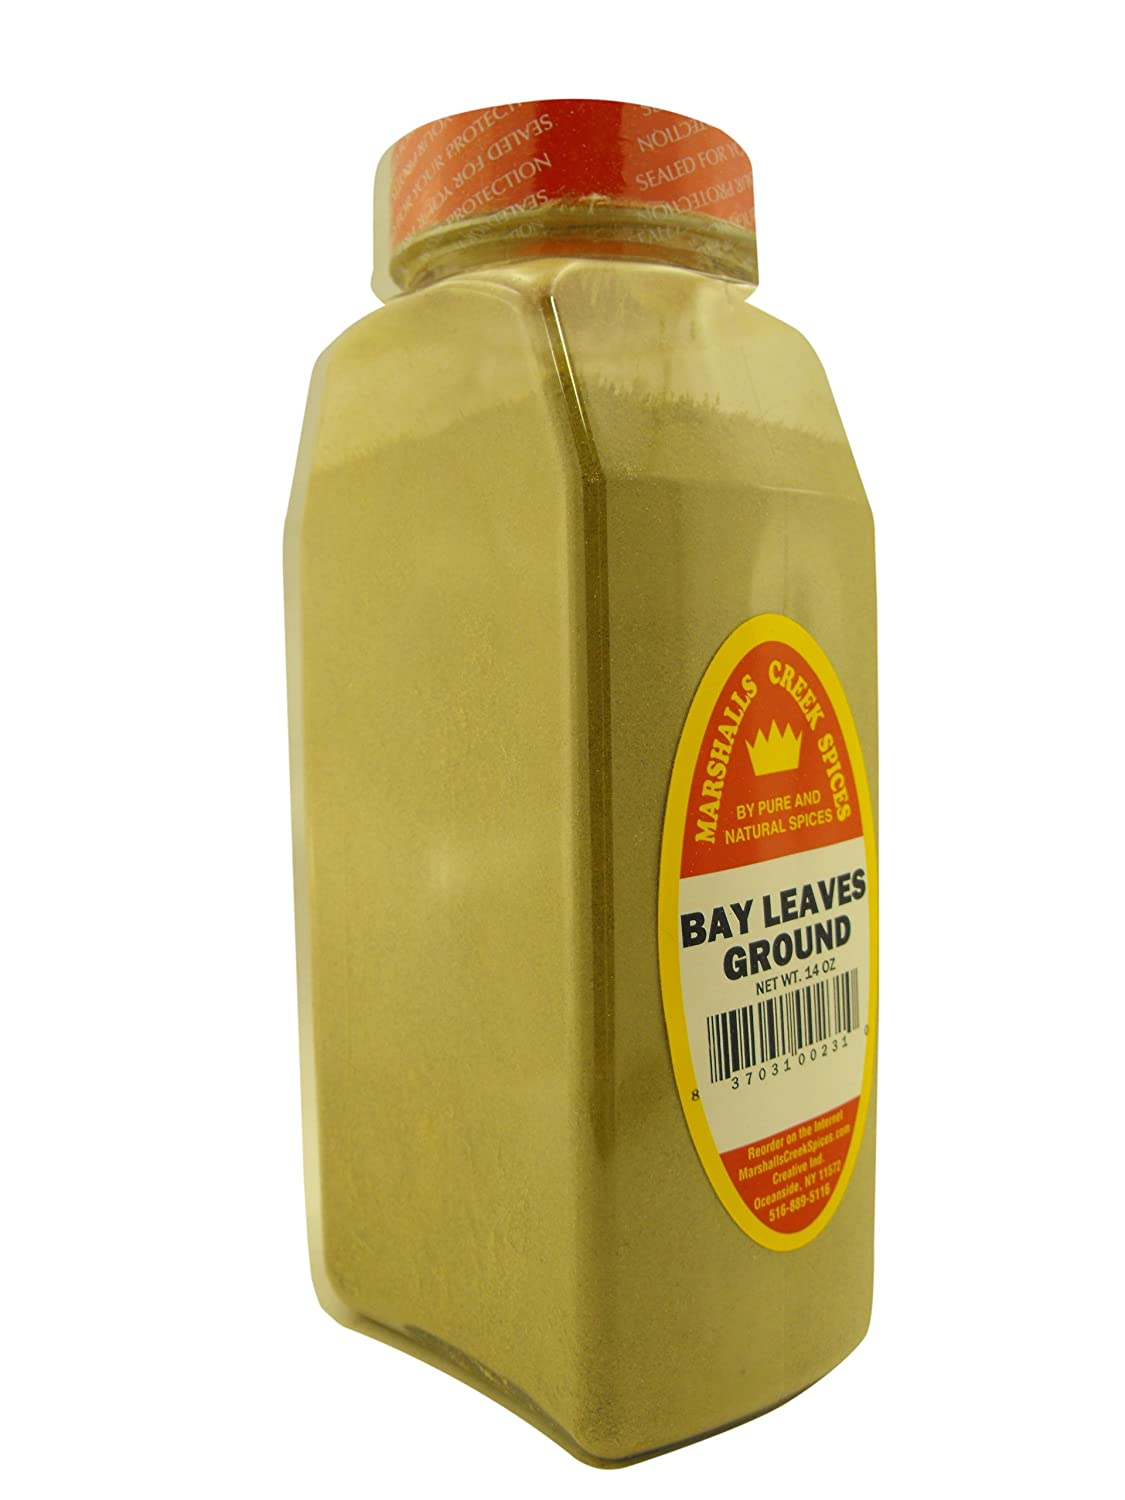 XL Size Marshalls Creek Spices Bay oz 14 Leaves … Super-cheap outlet Ground